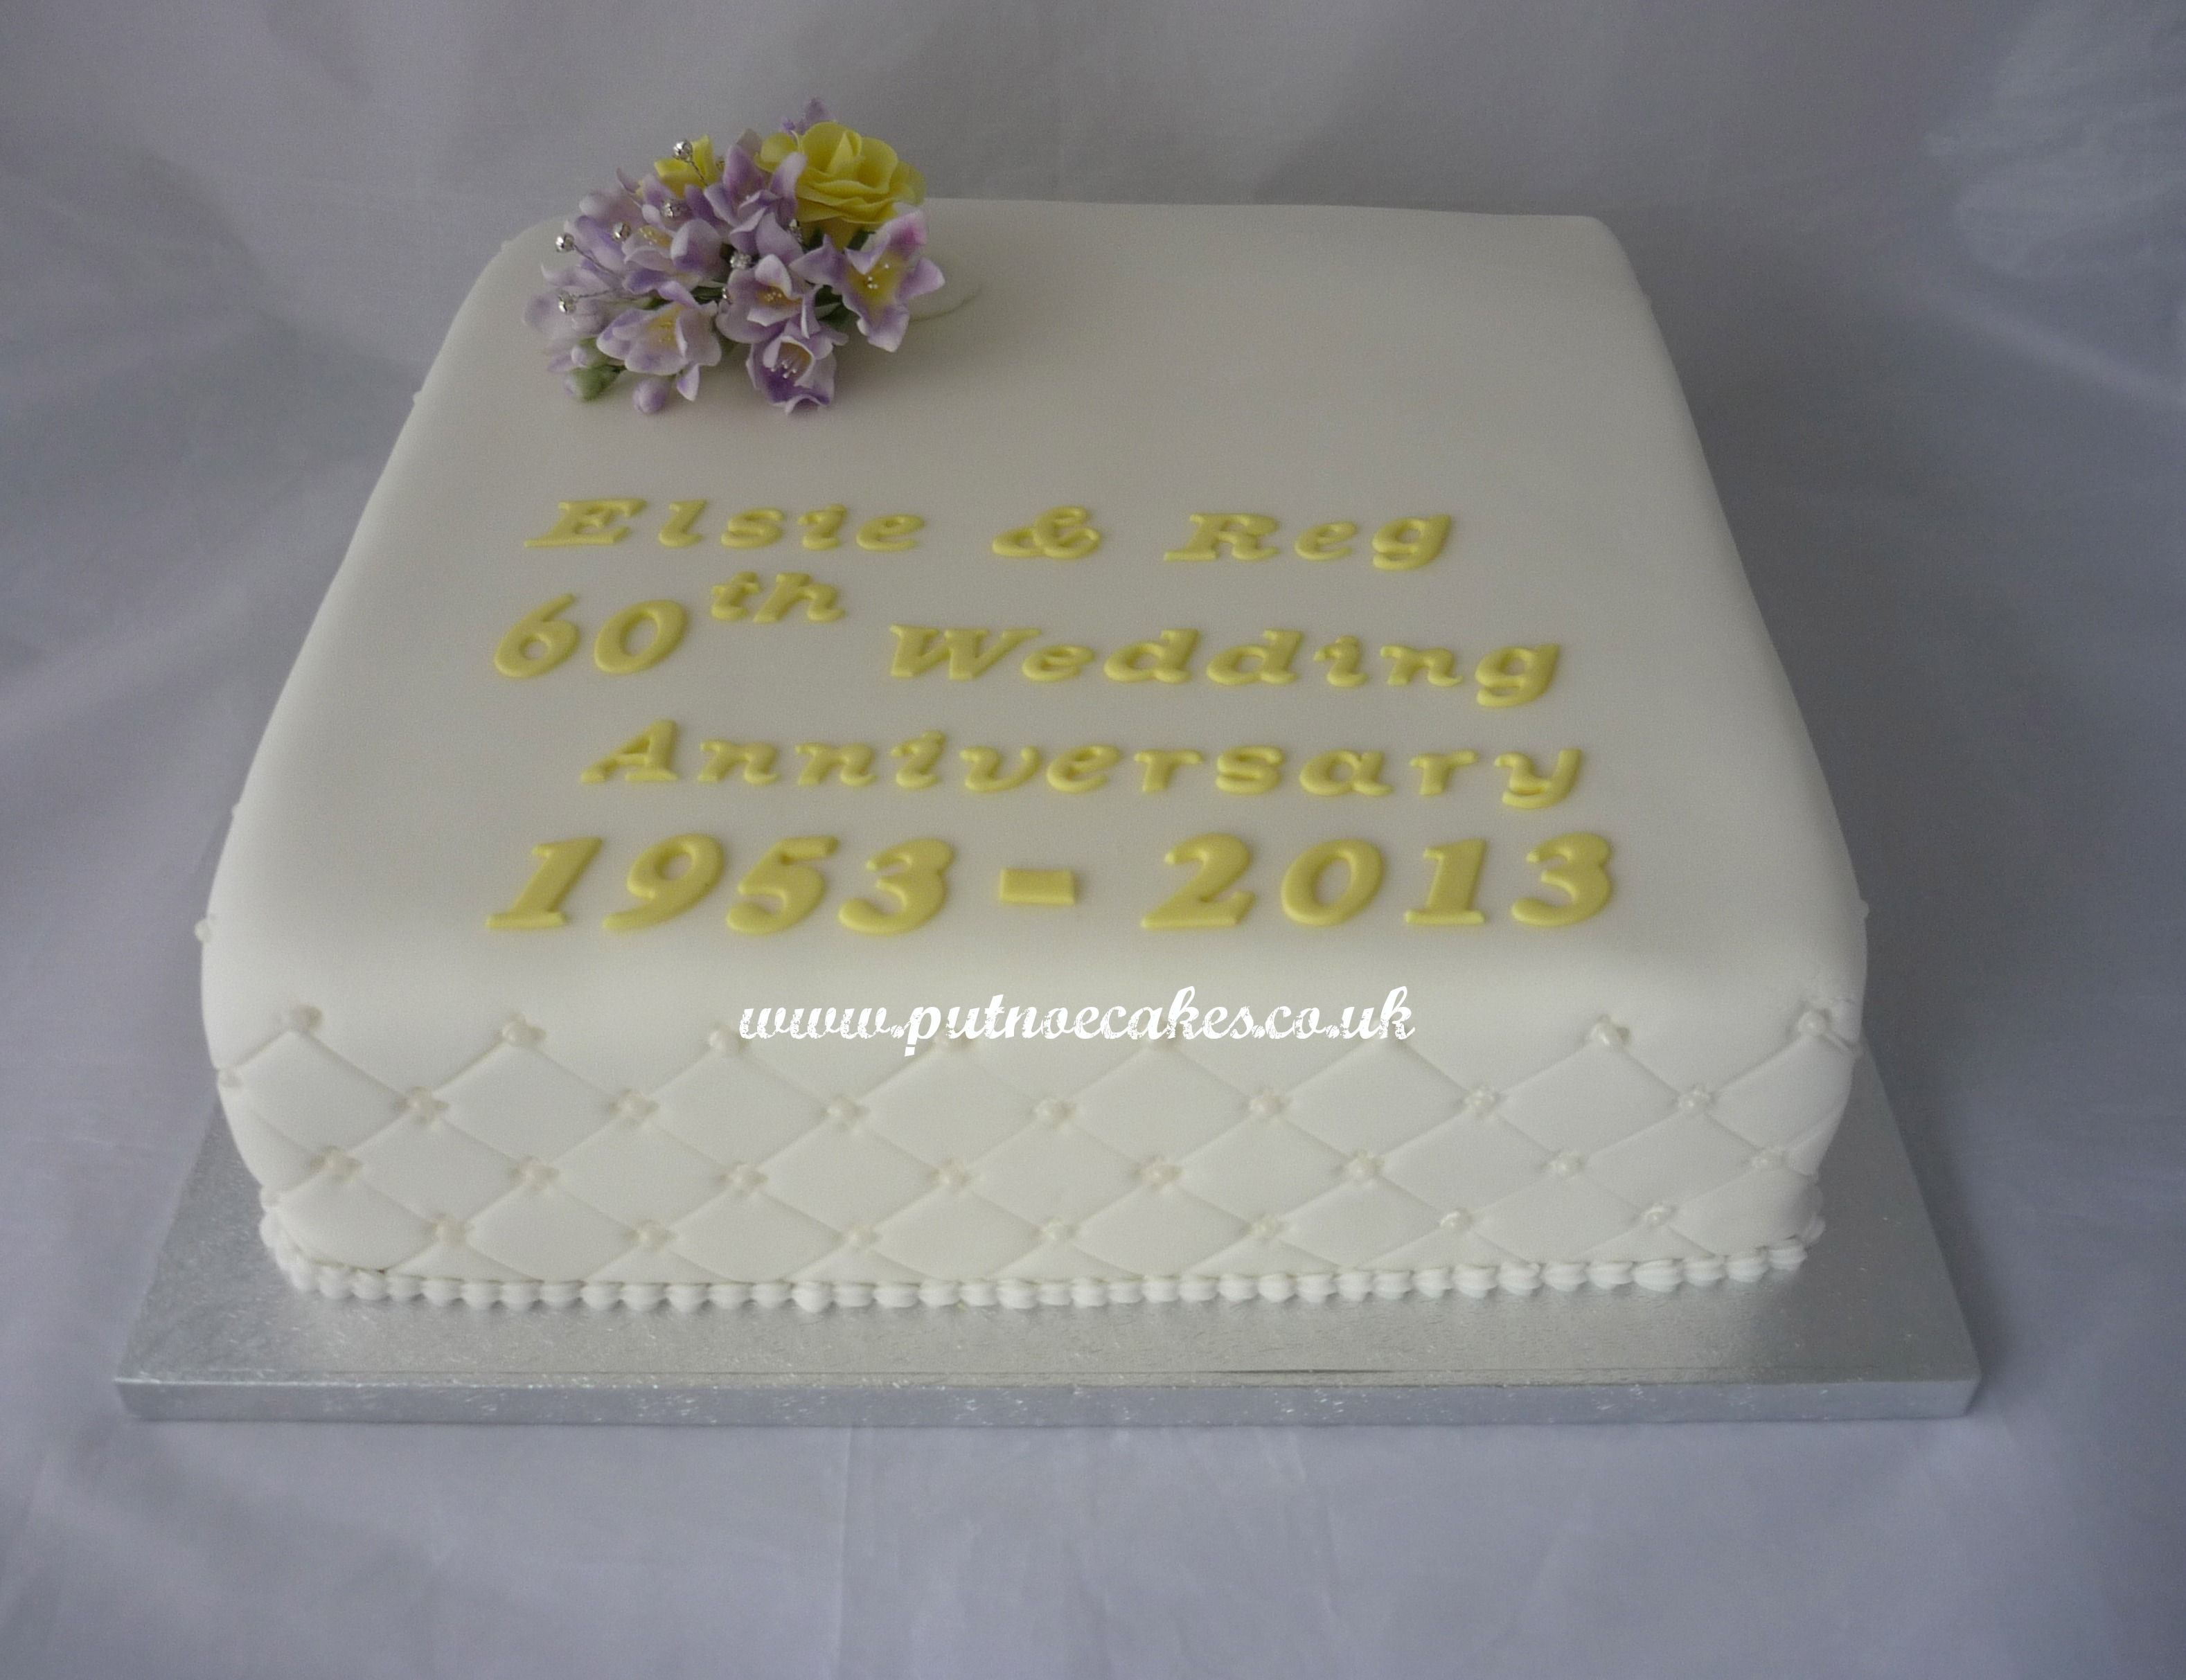 Cake Decorations For Diamond Wedding Anniversary : 60th wedding anniverary cake ... 60th-wedding ...